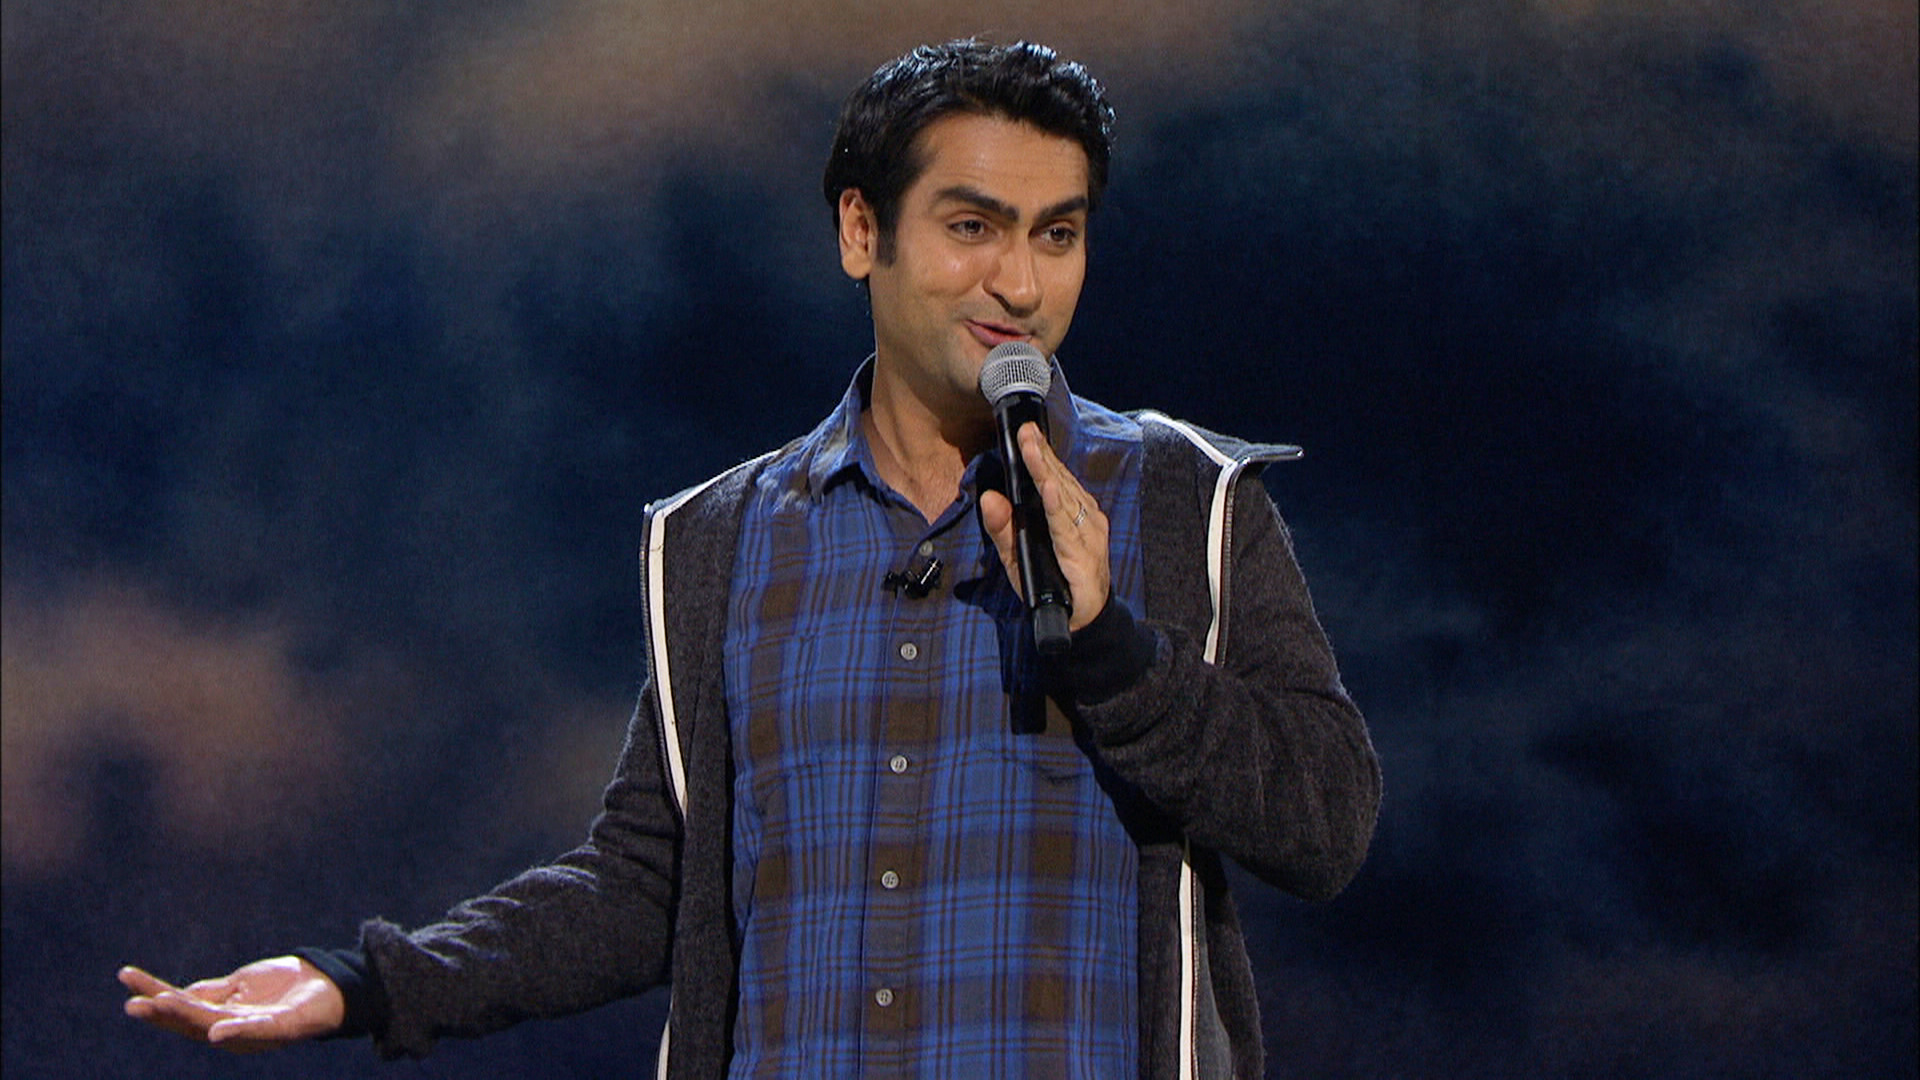 Uncensored - Kumail Nanjiani - Porn Stuck in the VCR Pt. 2